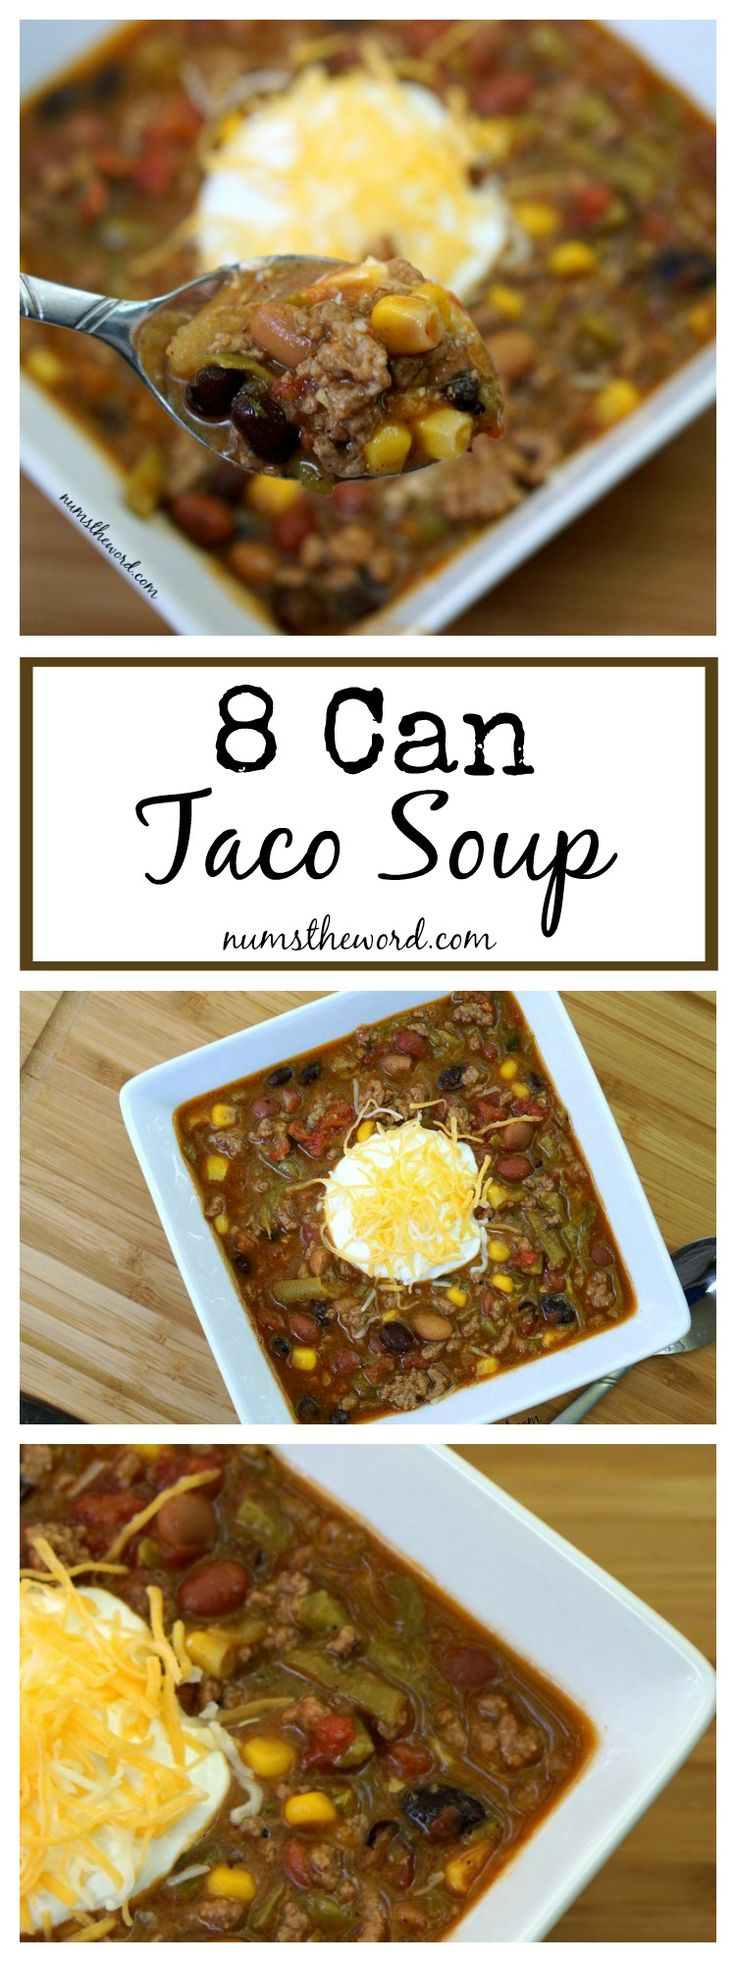 This 8 Can Taco Soup is fool proof and delicious! Ready in 40 minutes and freezes well! A perfect Autumn meal everyone will love!